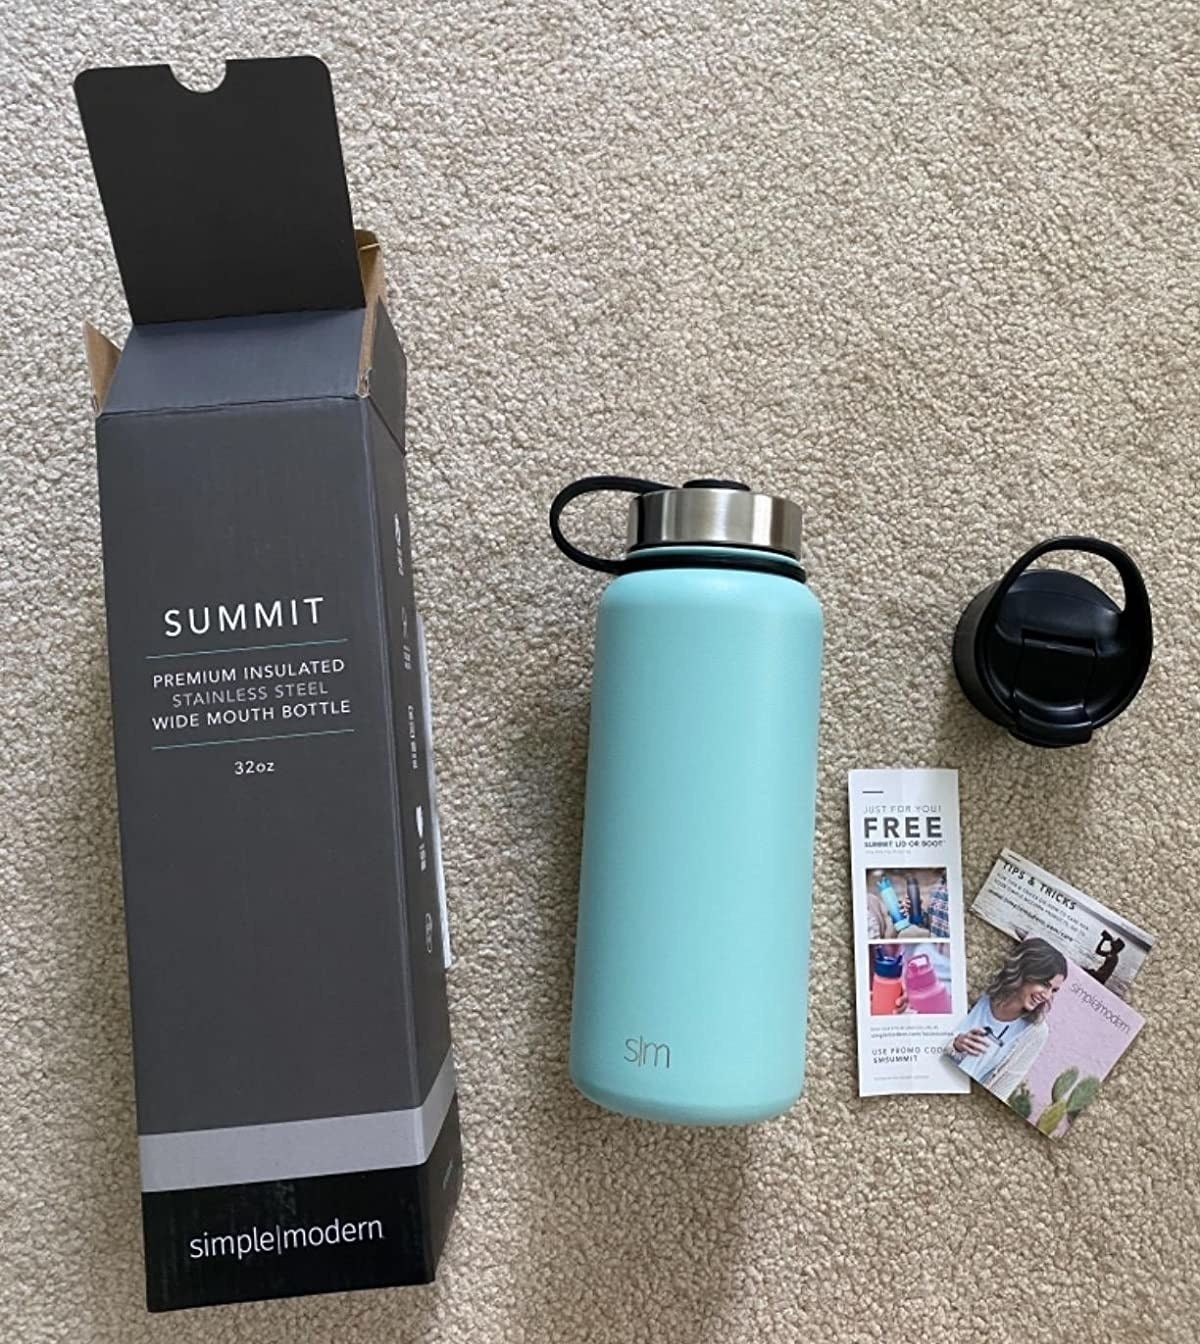 reviewer photo showing the water bottle in blue and the packaging it came in